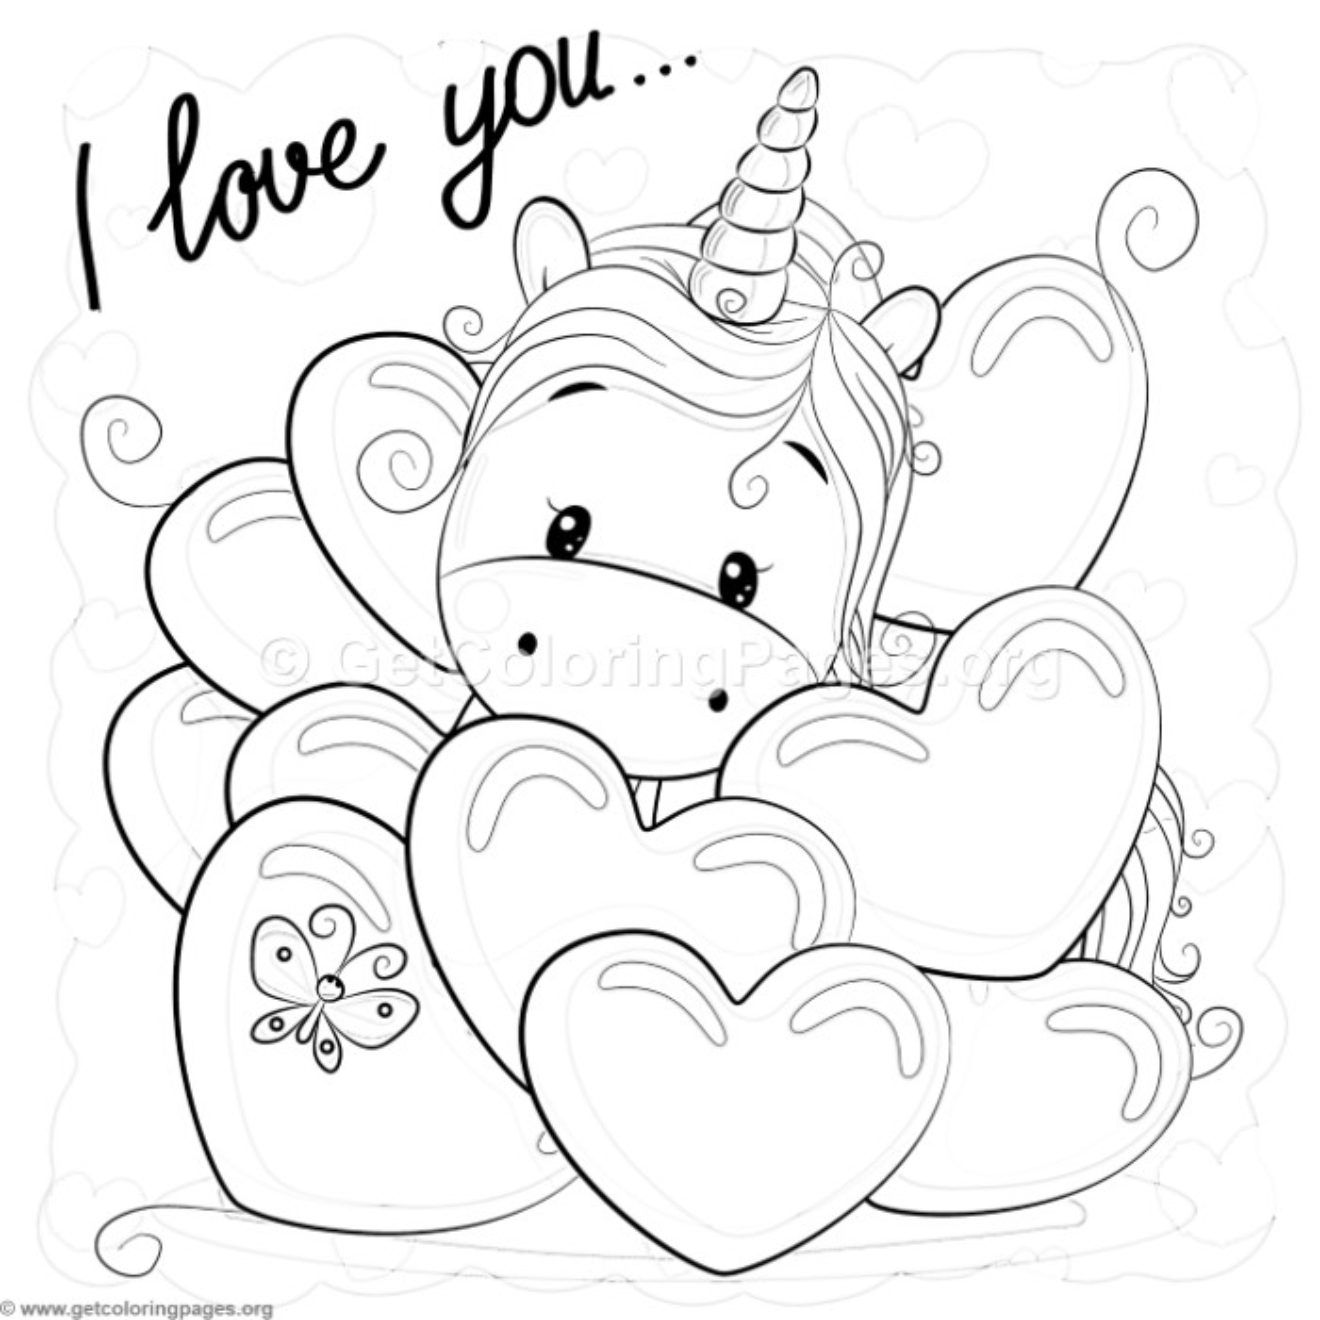 Valentine i love you unicorn coloring pages getcoloringpages org